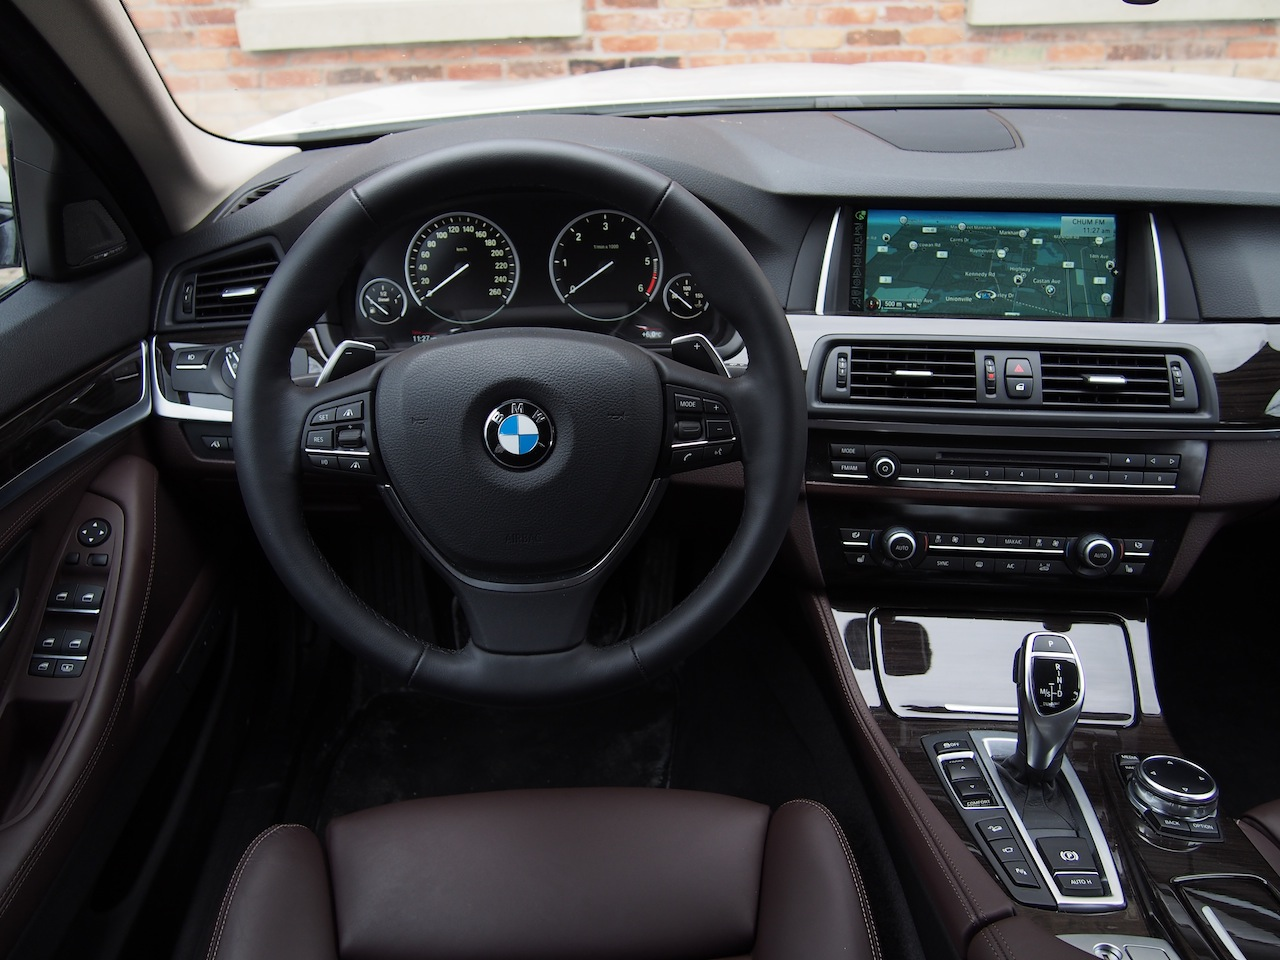 2014 Bmw 535d Xdrive Review Cars Photos Test Drives